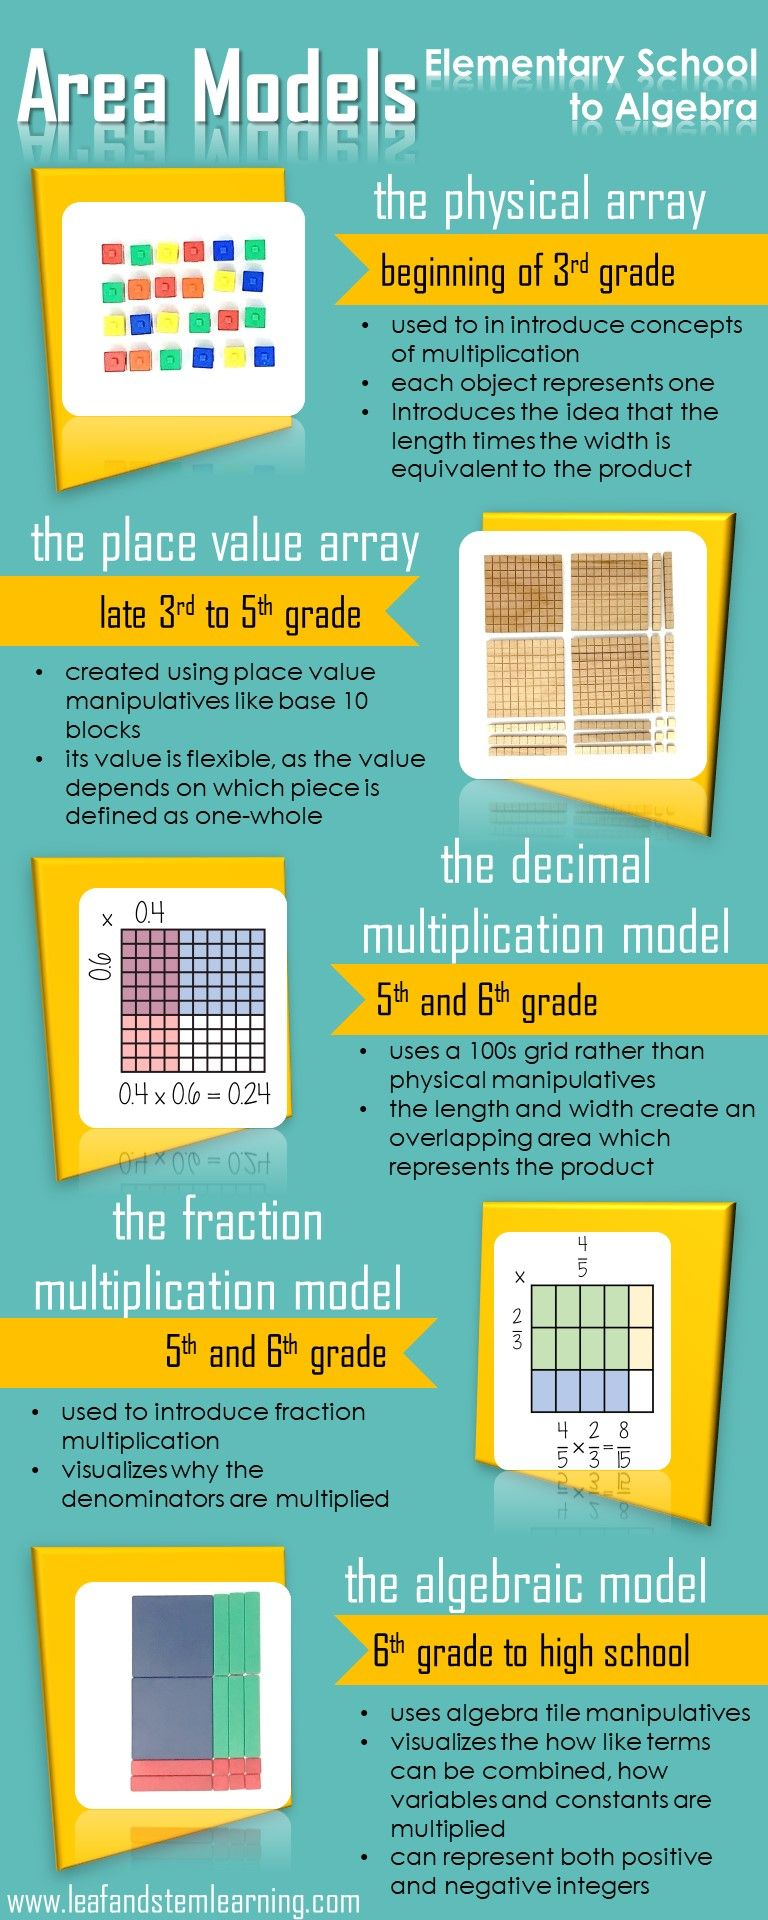 The Evolution of the Area Model: Elementary through Algebra | Middle ...